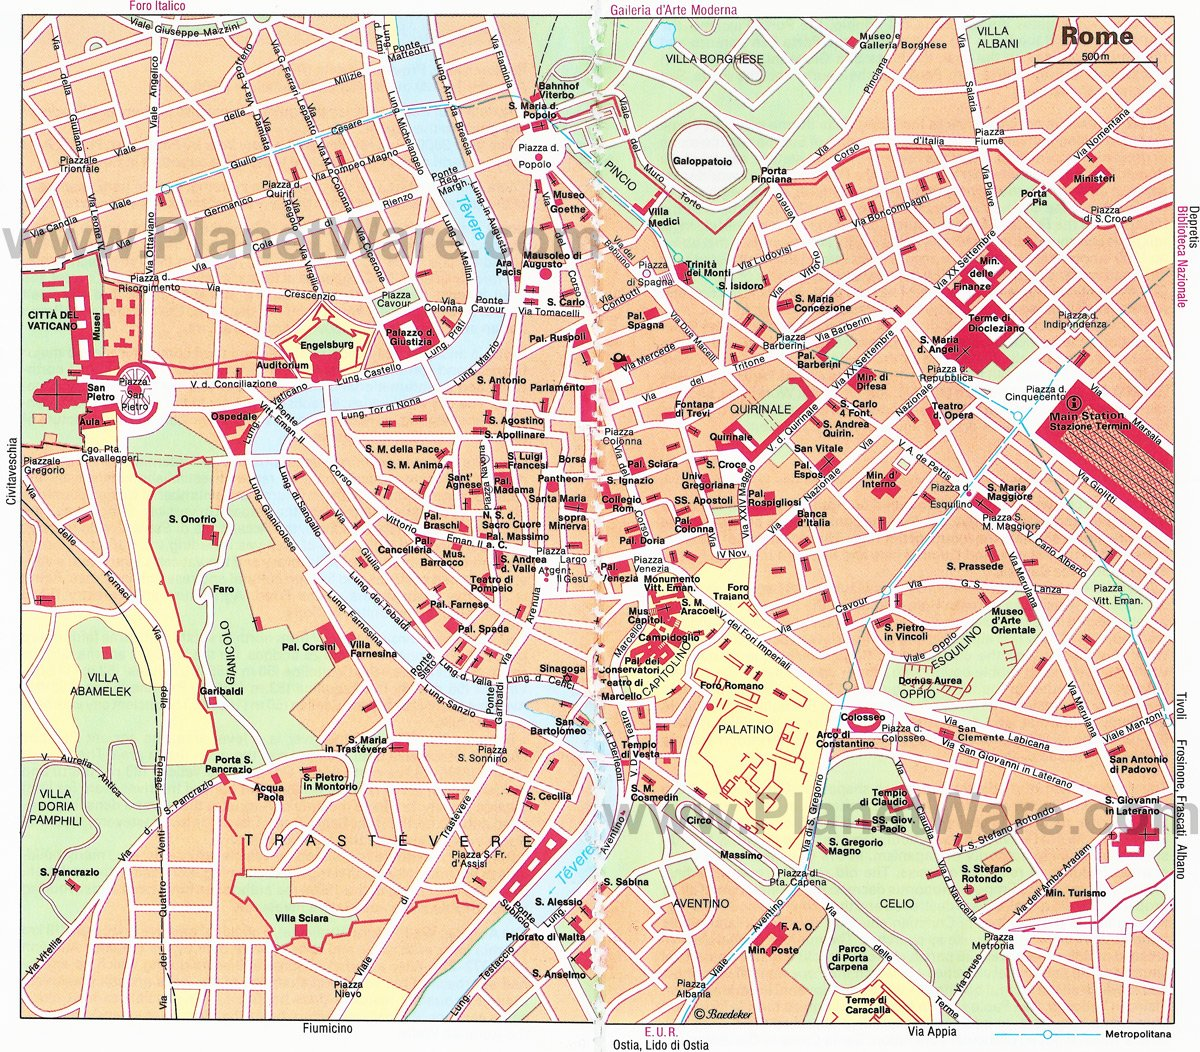 14 TopRated Tourist Attractions in Rome – Map Of Rome Tourist Attractions